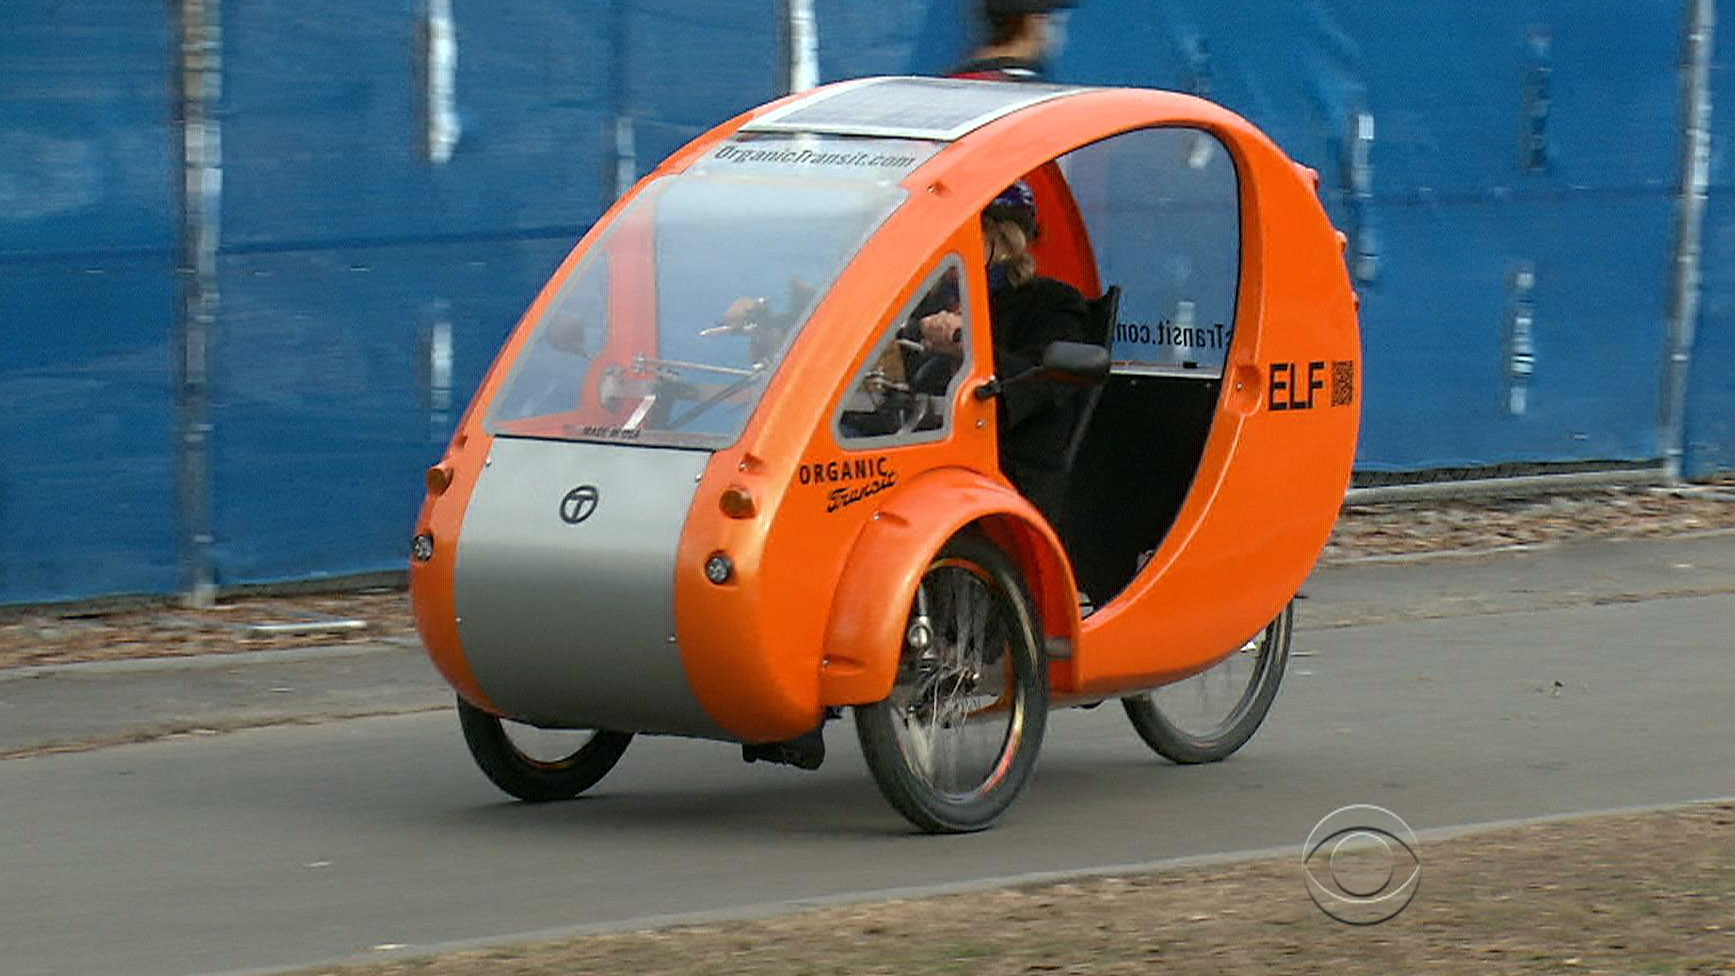 Bike car hybrid combines functions of both makes commute for Is a bicycle considered a motor vehicle